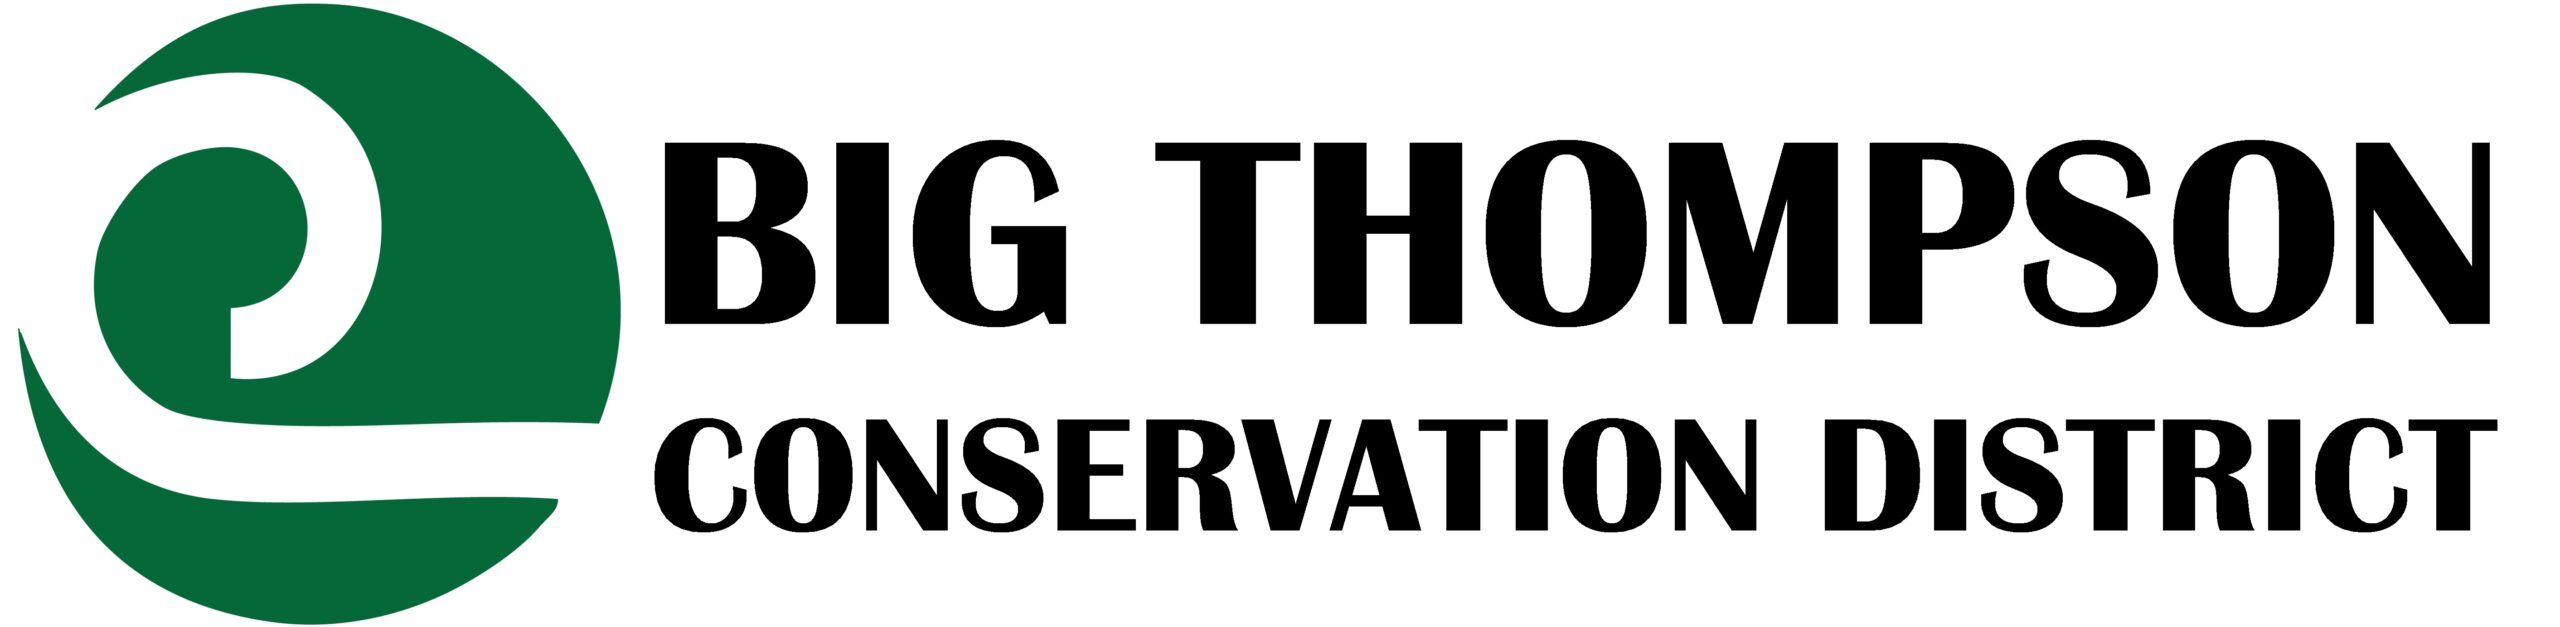 Big Thompson Conservation District